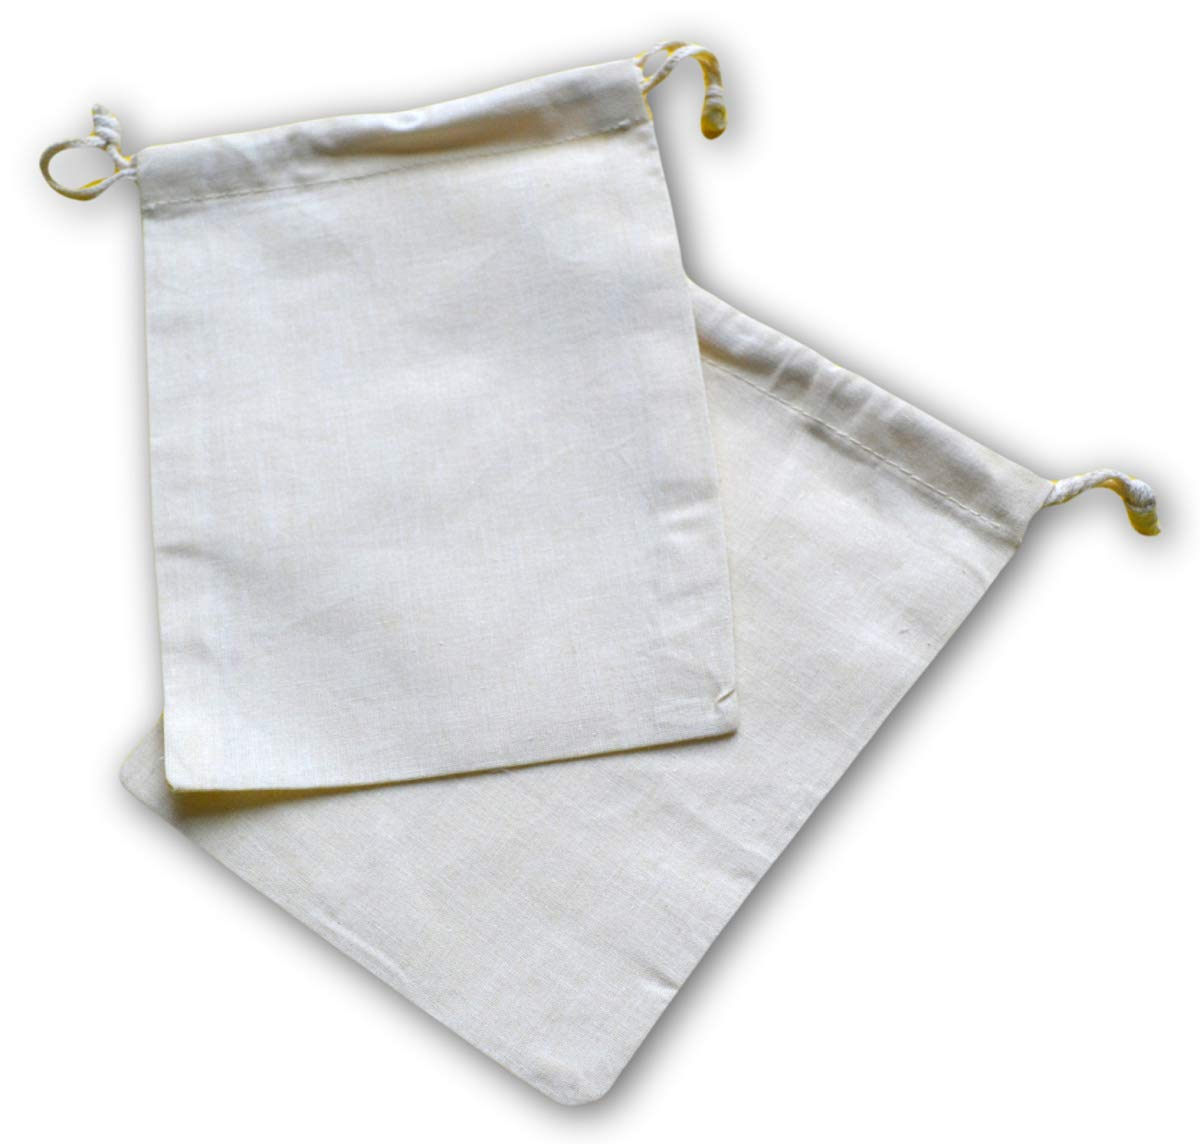 Reusable ECO Friendly Cotton Double Drawstring Muslin Bags 4x6 inches (Natural Color)-100 Count Pack by Custom bags